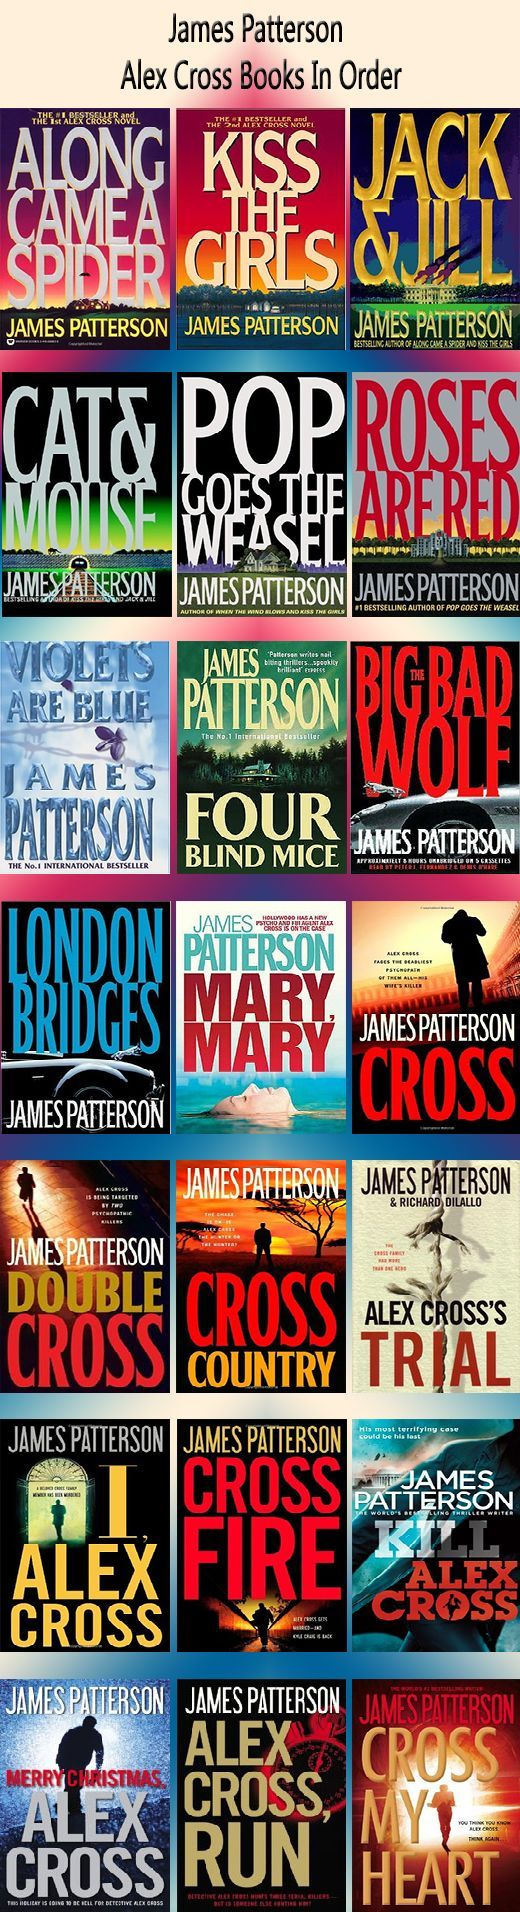 Alex Cross Books In Order By James Patterson Http Mysterysequels Com James Patterson Alex Cross Books In James Patterson Books James Patterson Mystery Books